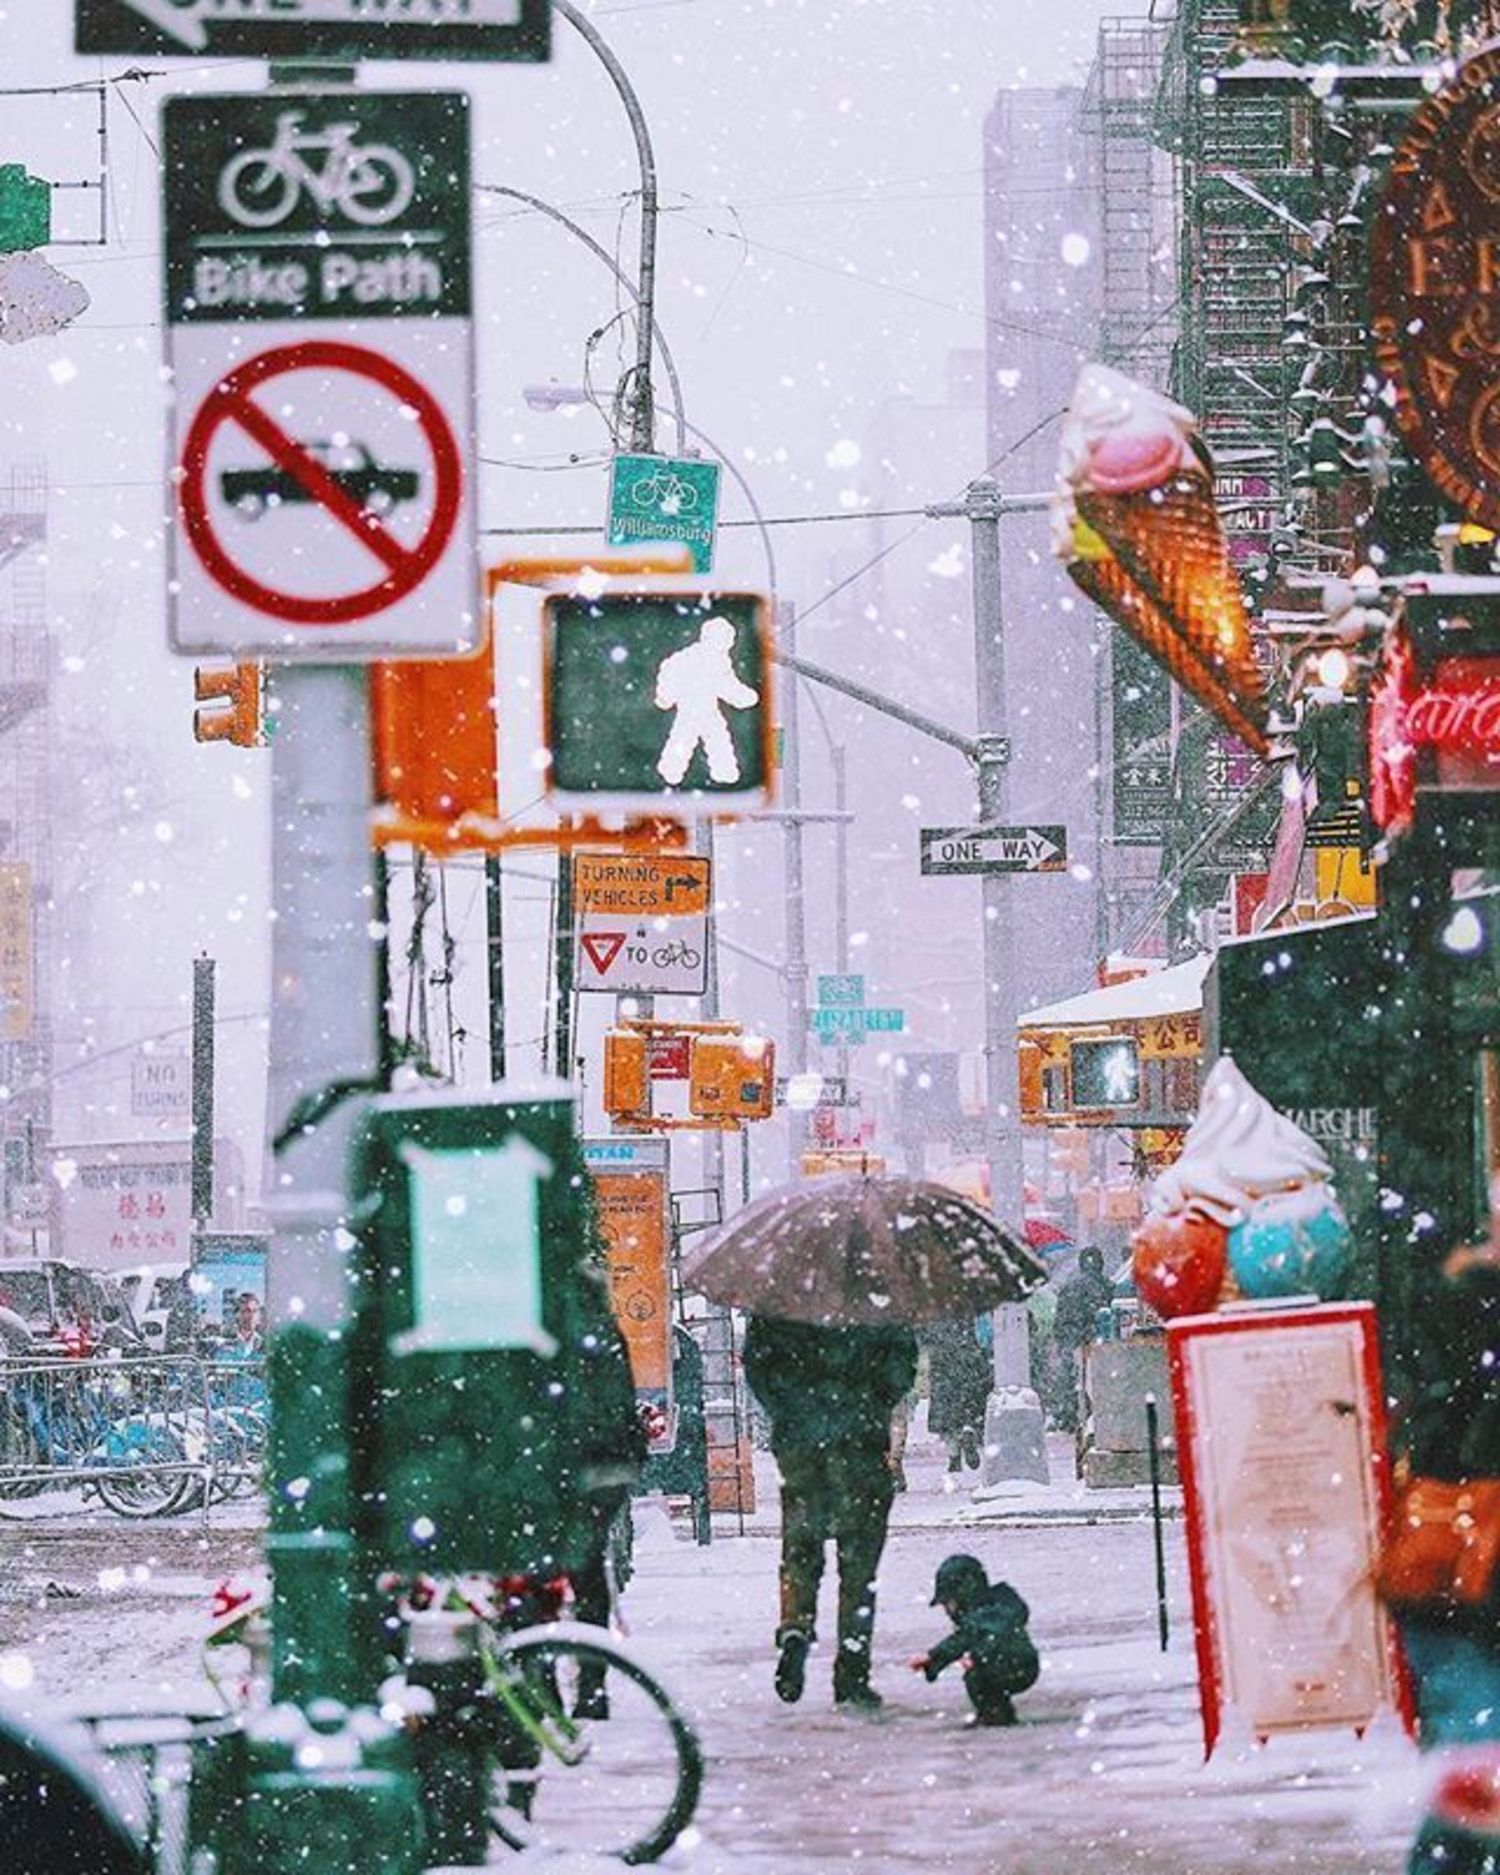 New York, New York. Photo via @golden2dew #viewingnyc #newyorkcity #newyork #nyc #snow